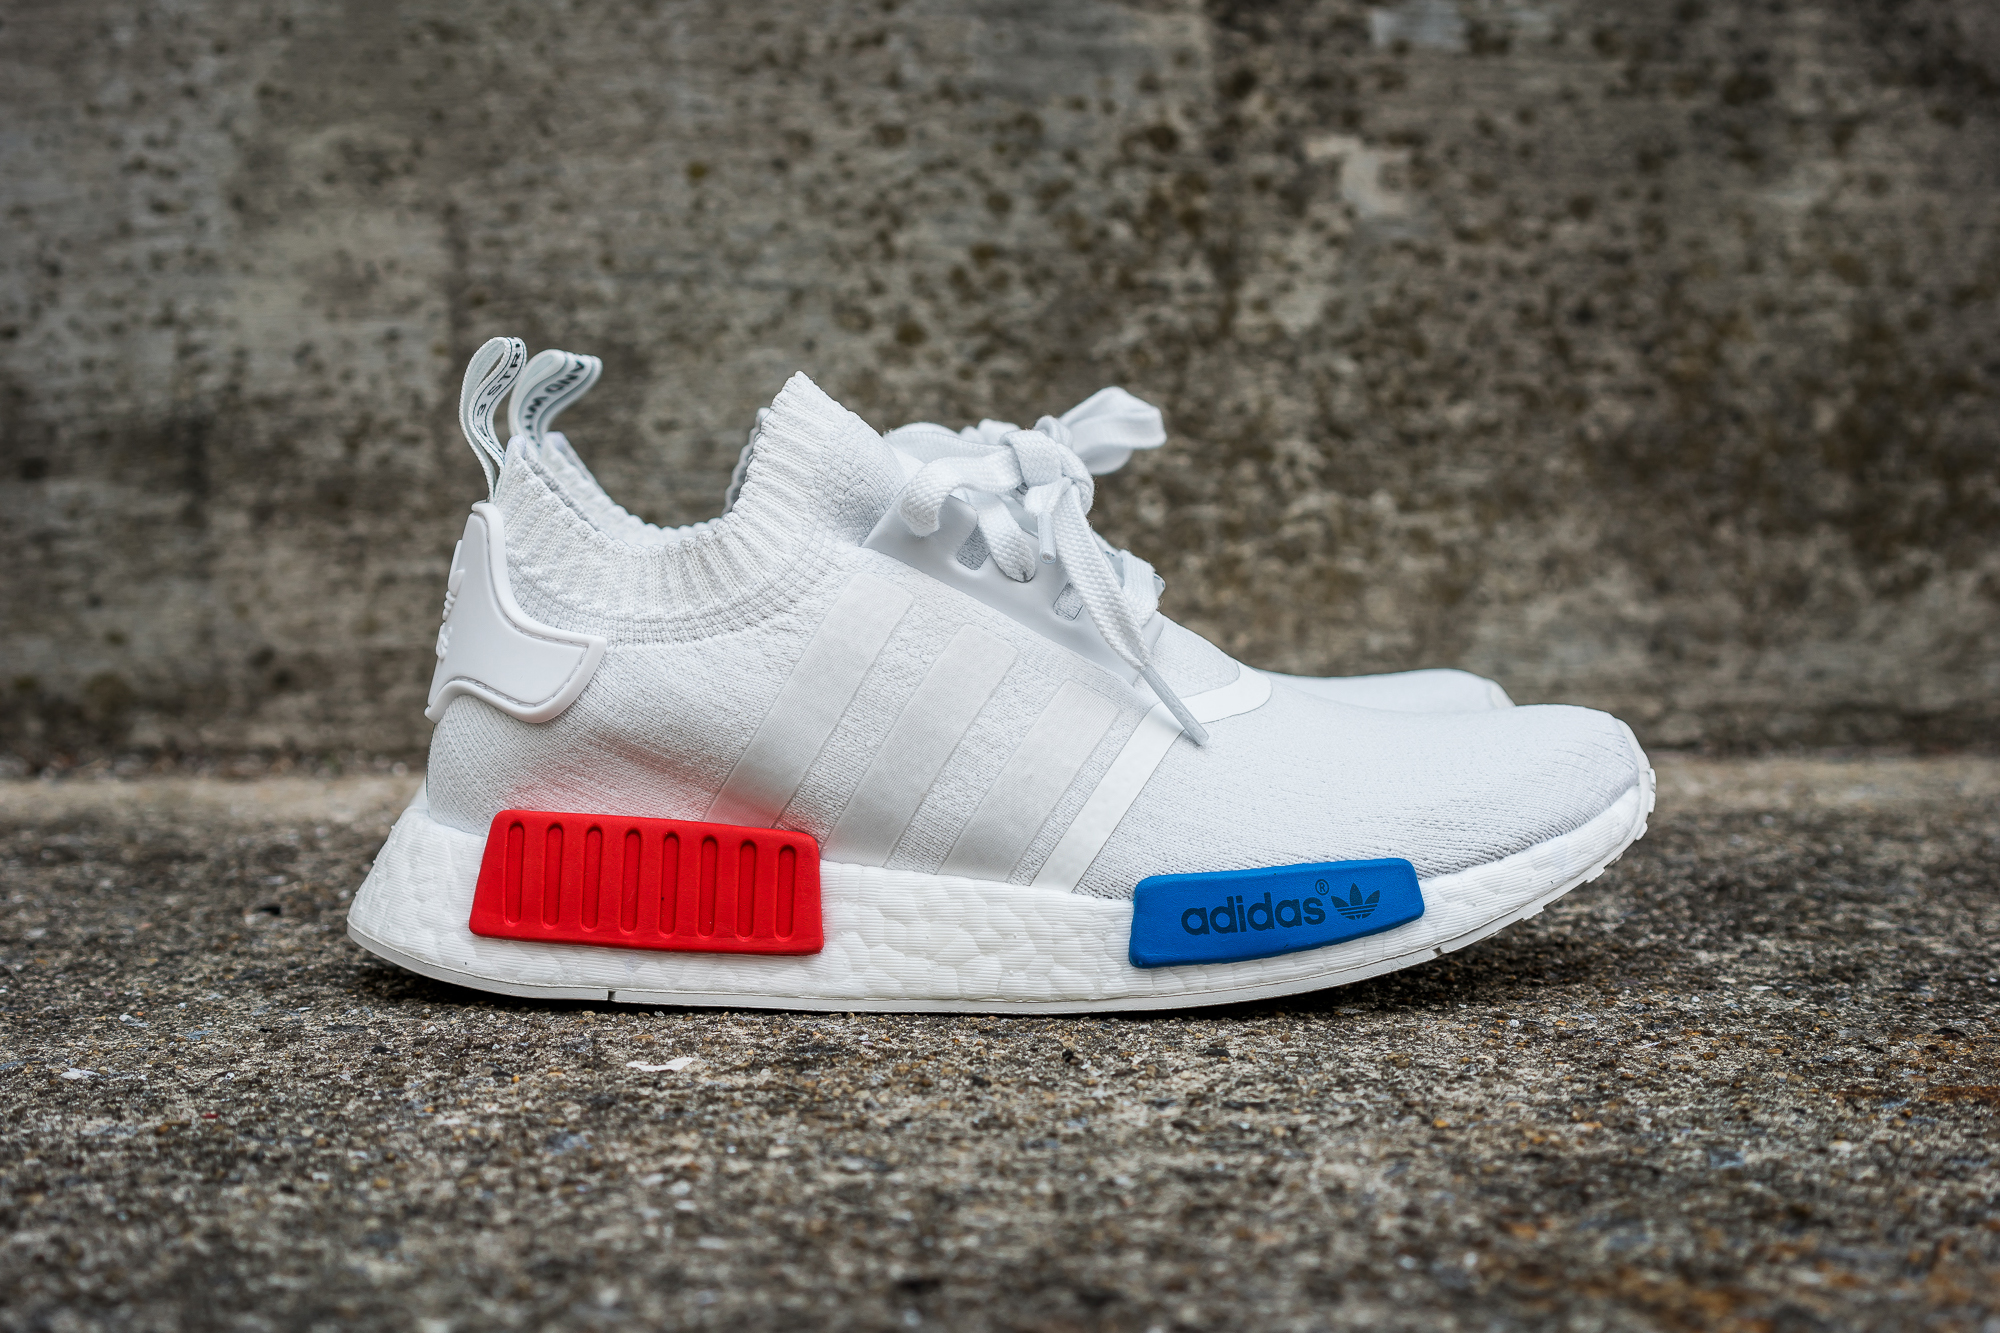 finest selection 6c9fb 098a2 inexpensive adidas nmd runner pk white 6009f 7c50e